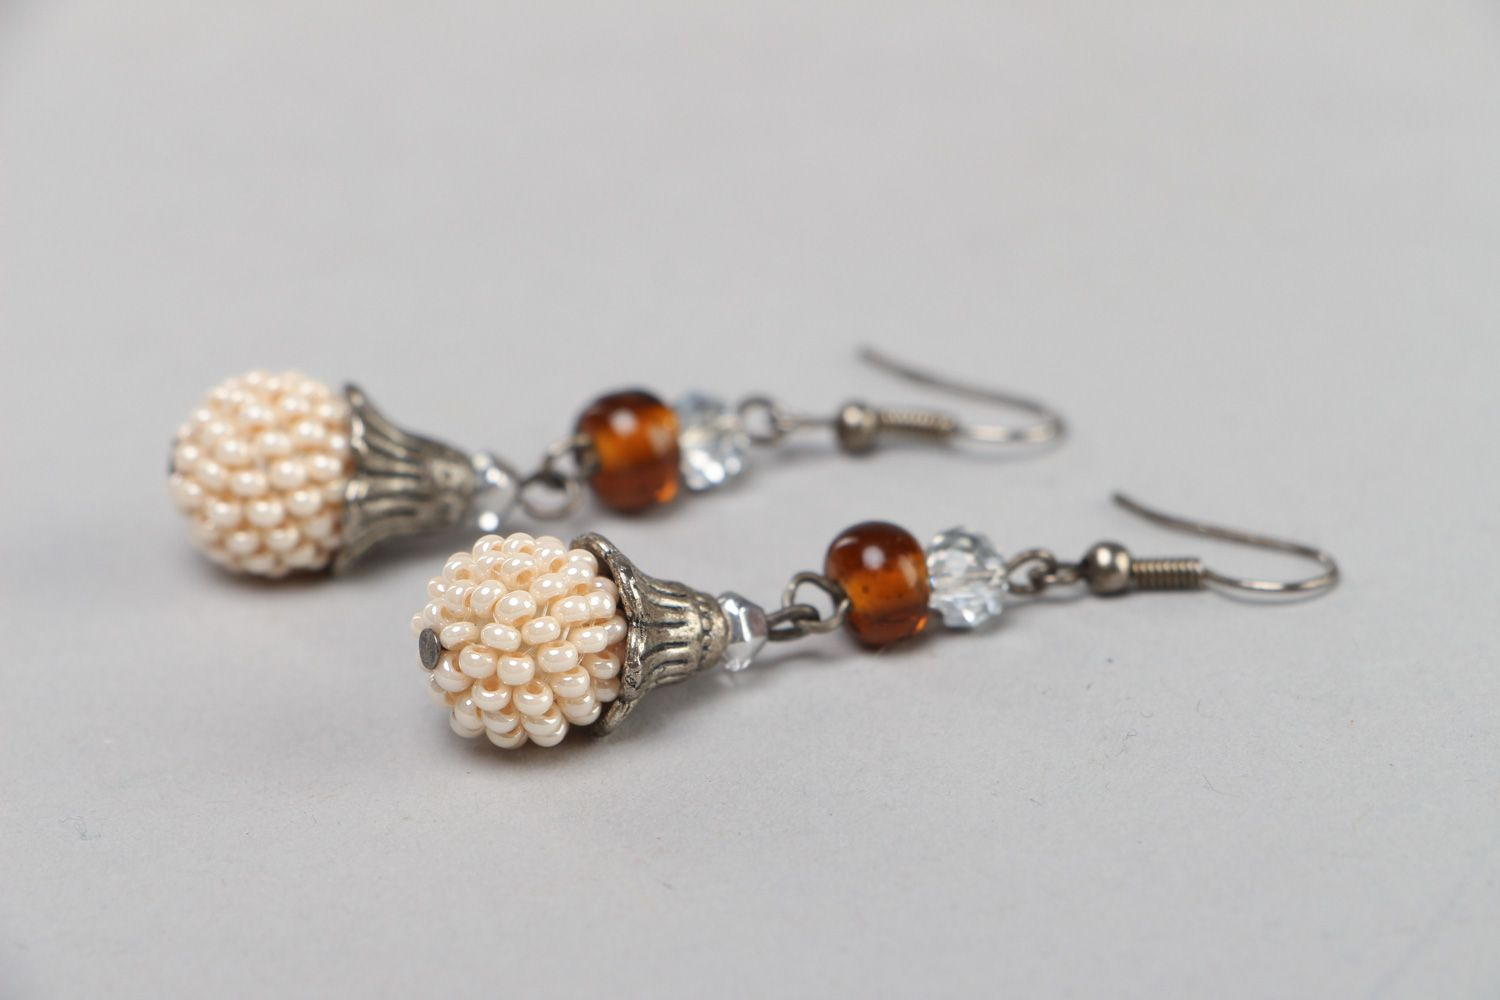 Handmade festive dangle earrings with Czech and glass beads in light color palette photo 2